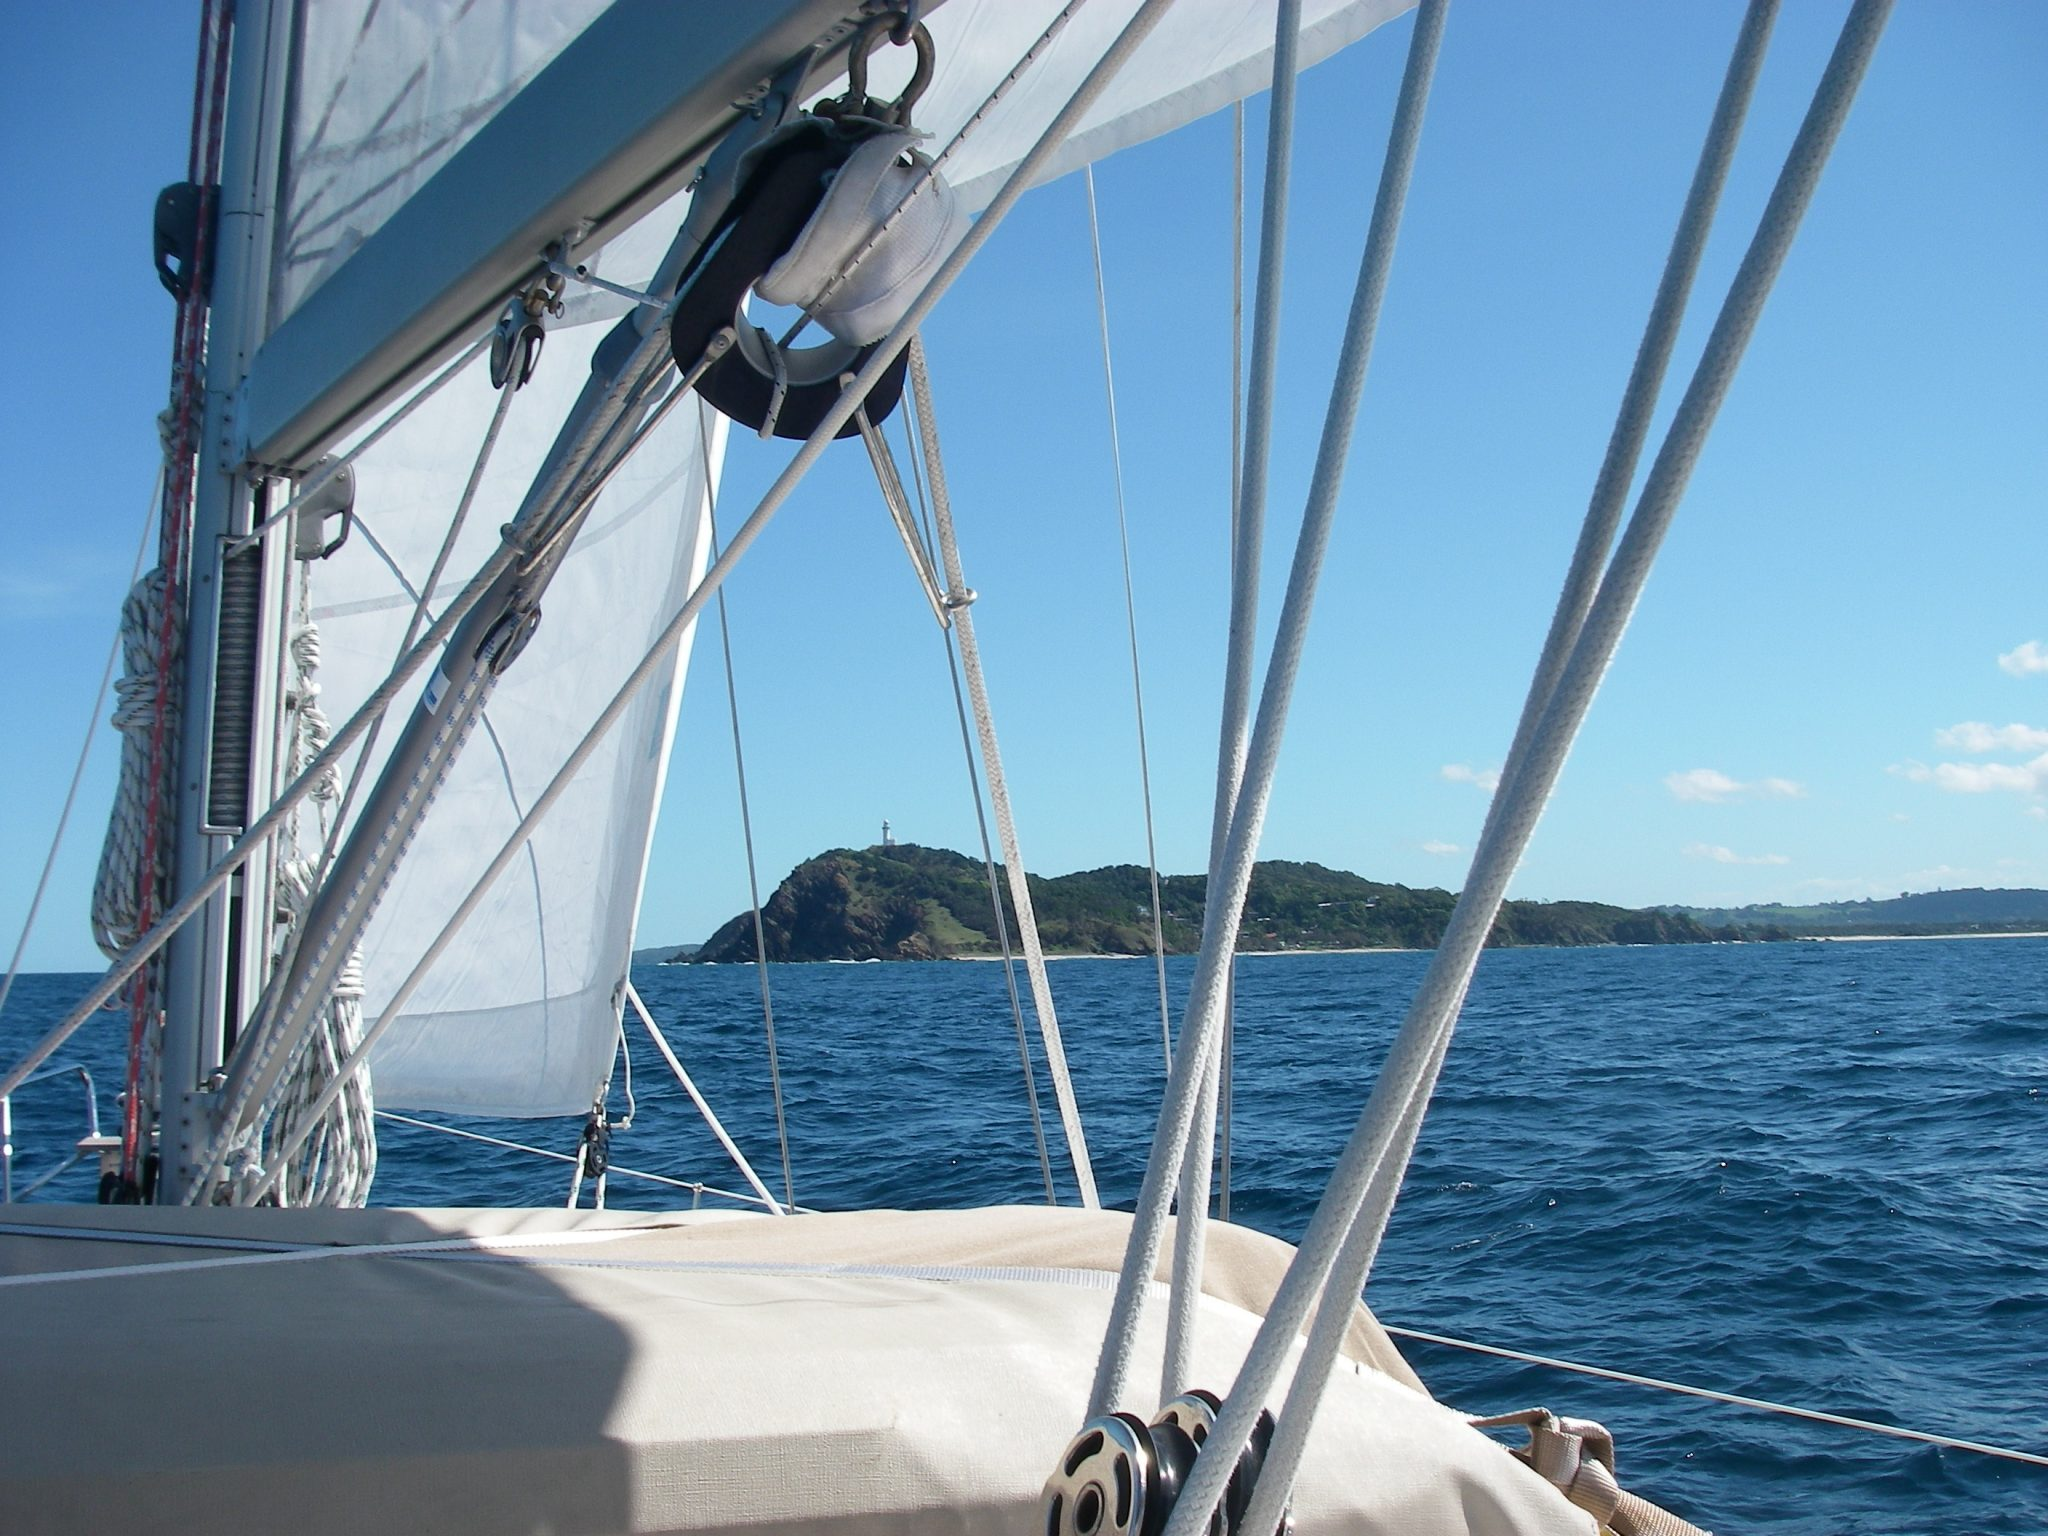 66. Joyful sailing along the east Australian coast on the Tasman Sea